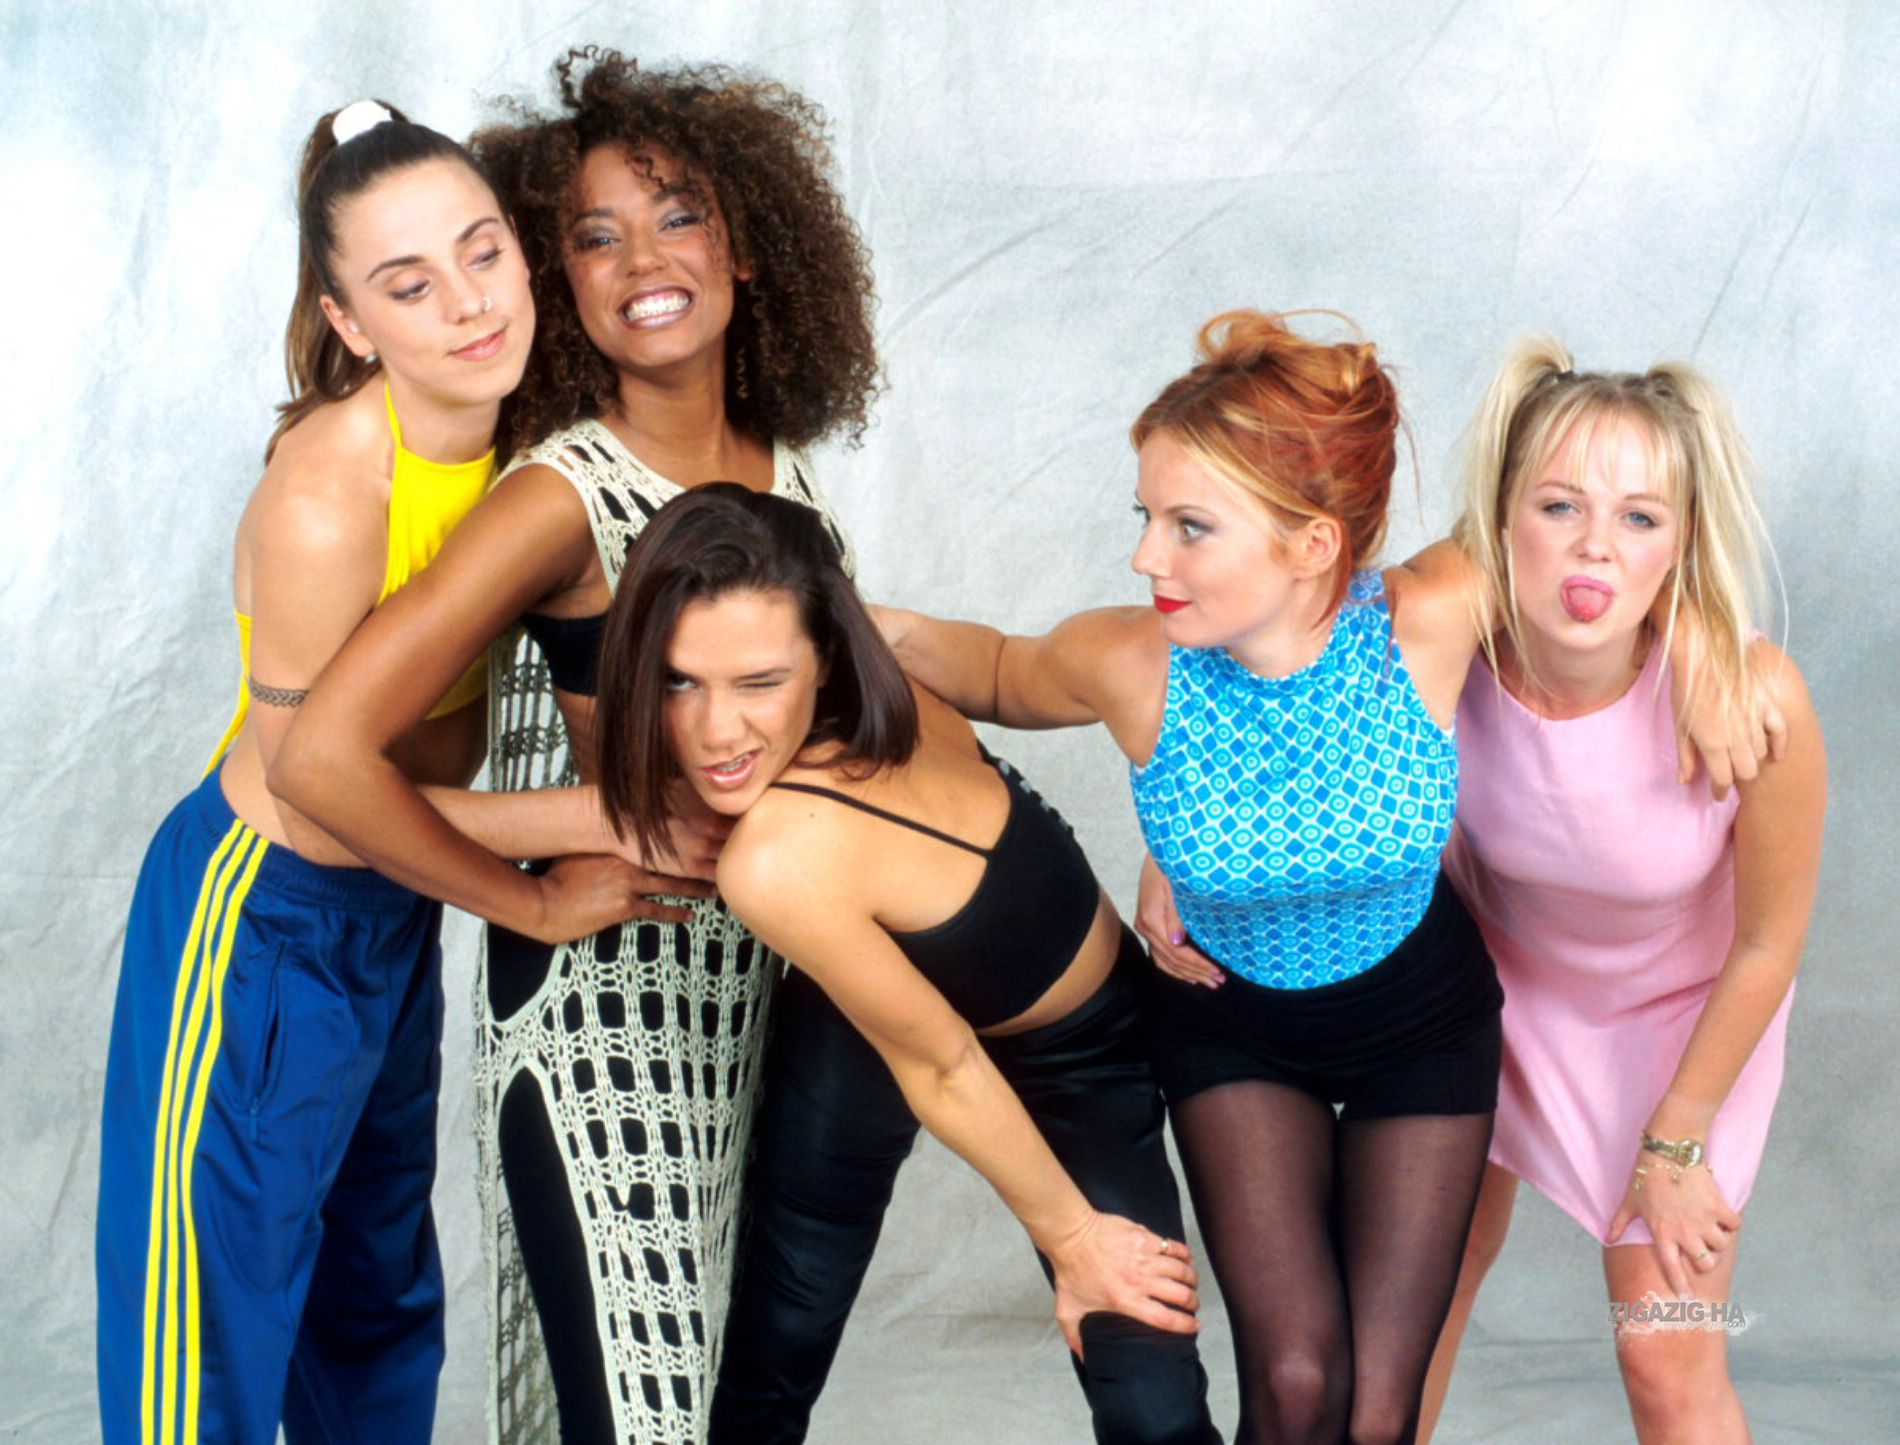 Idol Worship: What the Spice Girls Taught Me About Feminism ...: www.autostraddle.com/idol-worship-what-the-spice-girls-taught-me...